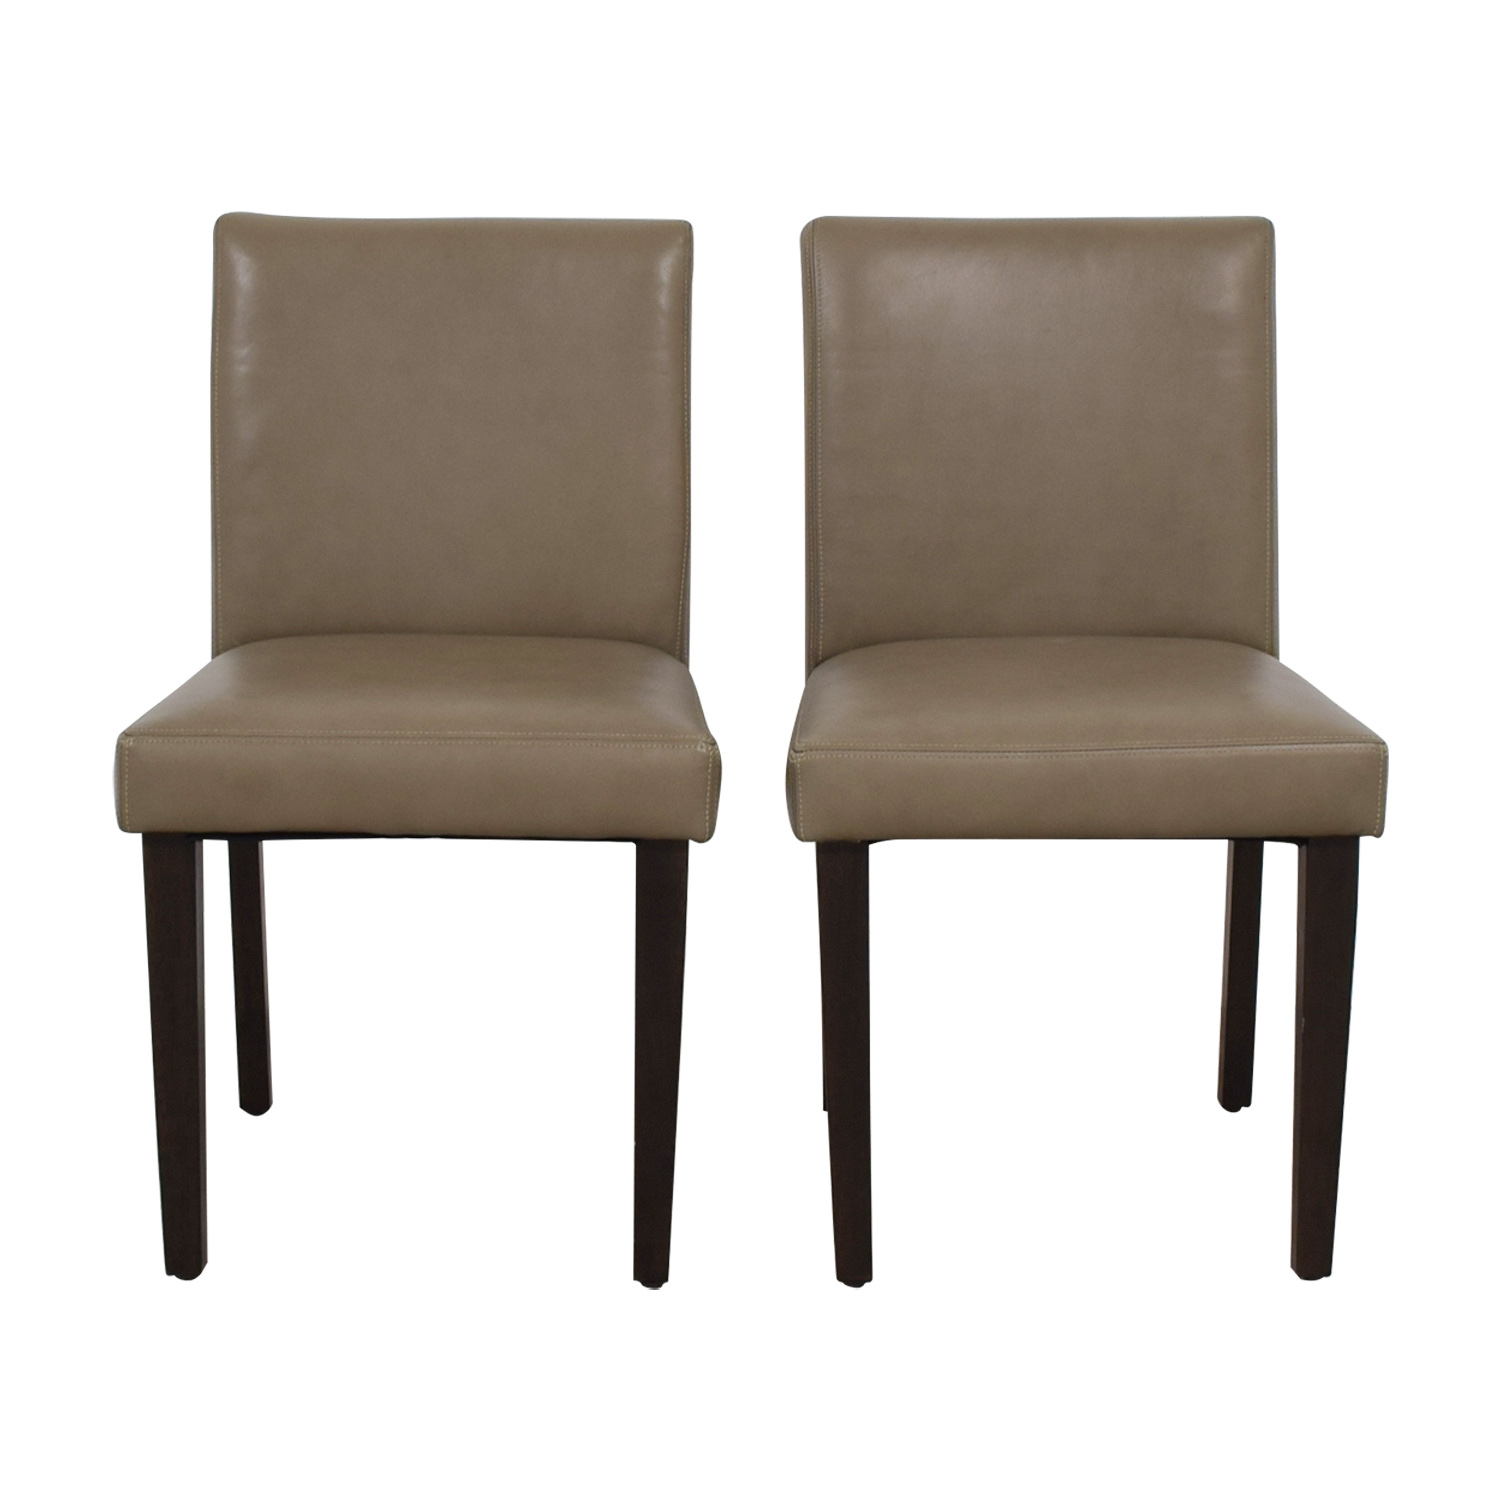 West Elm West Elm Porter Taupe Leather Dining Chairs nyc